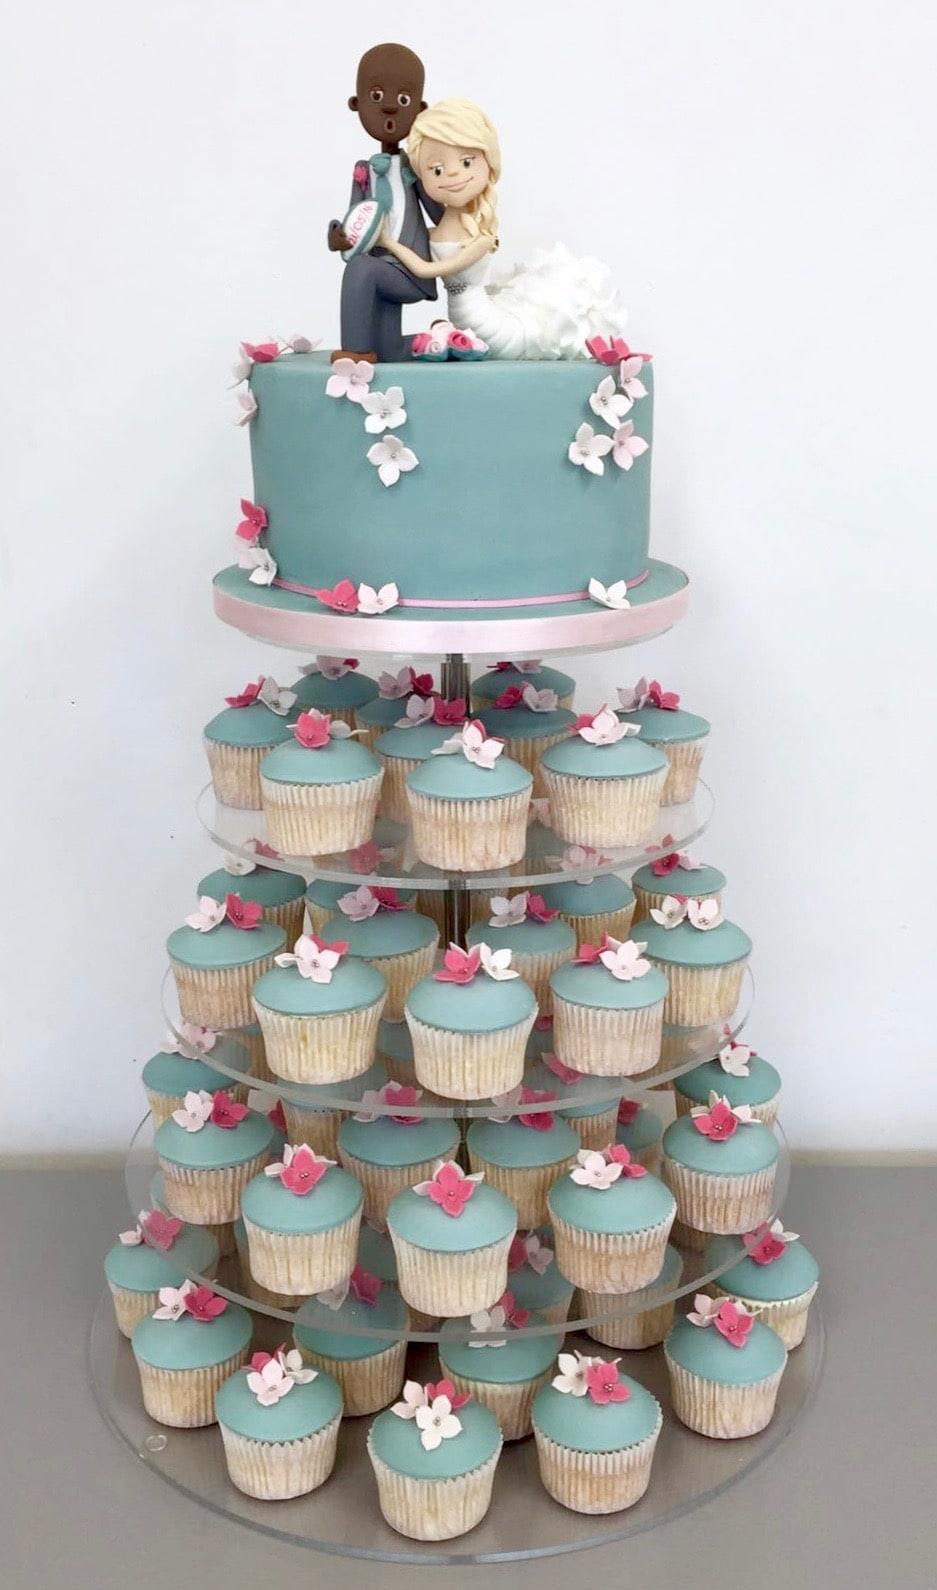 Wedding Cupcakes Towers.Tasteful Cakes By Christina Georgiou Turquoise And Pink Wedding